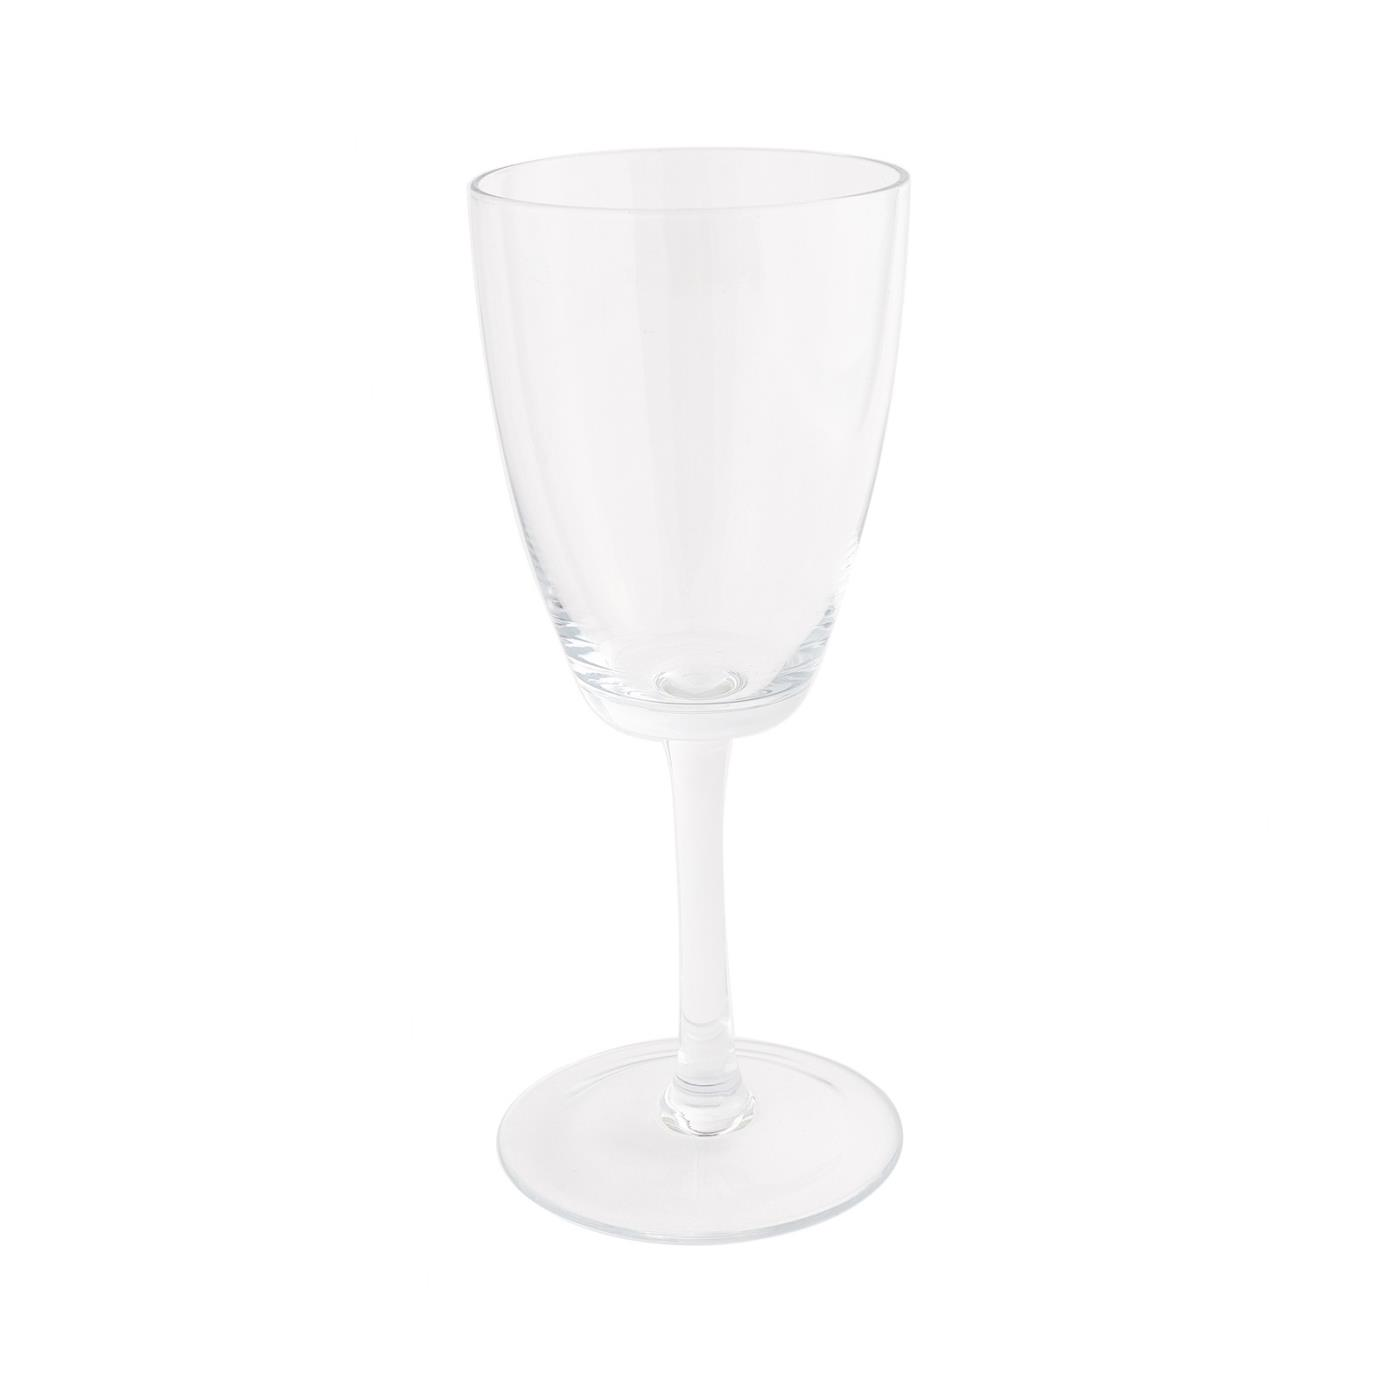 Elan Collection -  White Wine Glass 10 oz